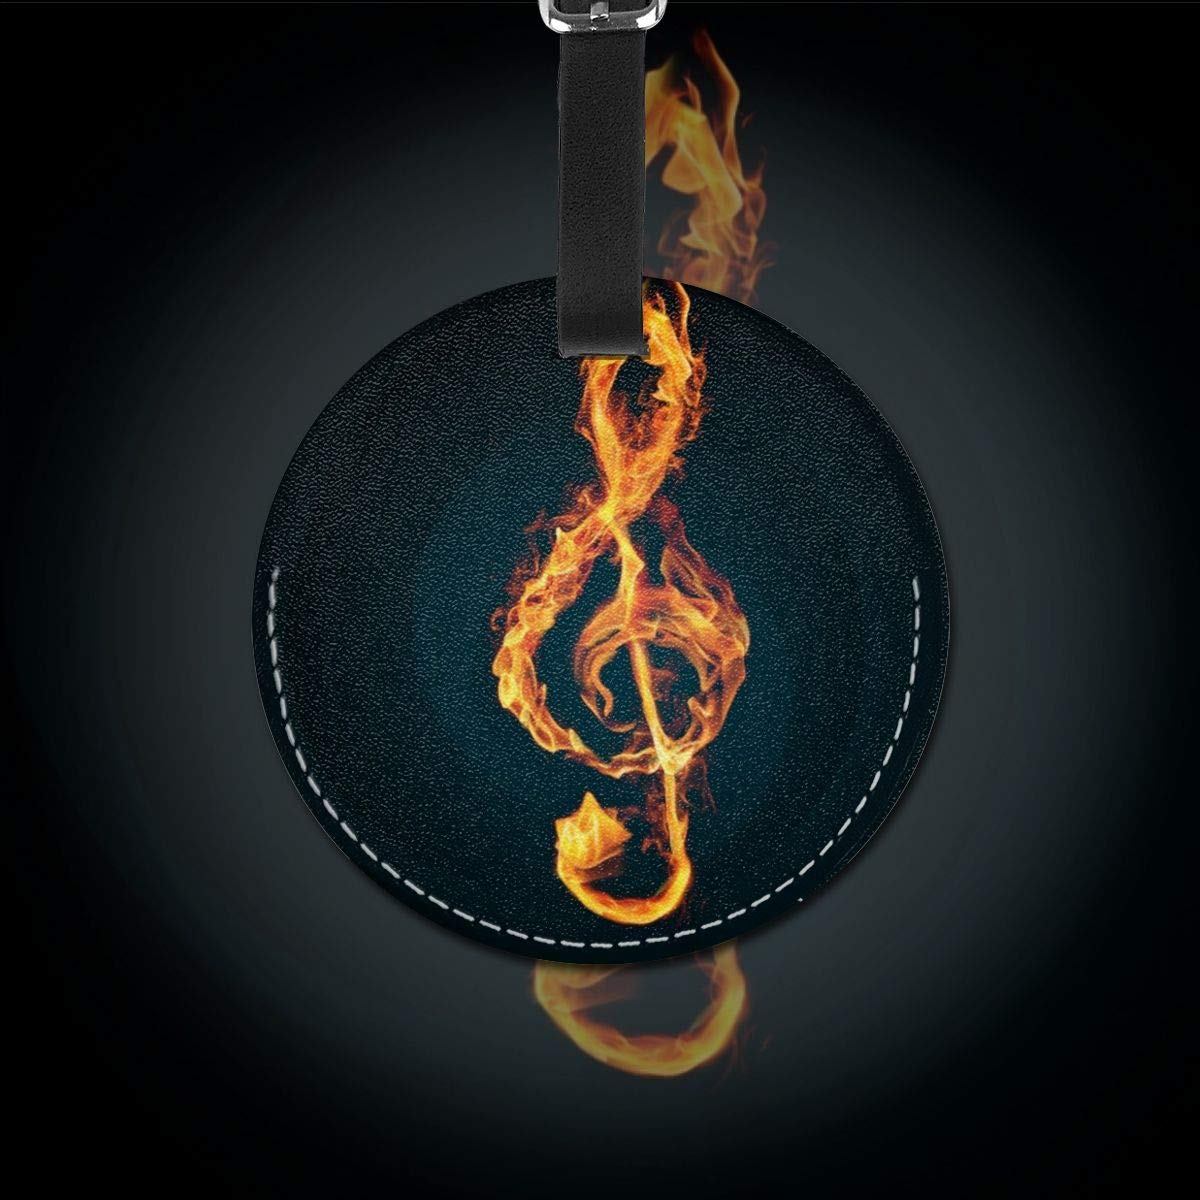 Jinsshop 4 PCS Leather Luggage Tag With Name ID Card Perfect To Quickly Spot Luggage Suitcase Fire Music Notes